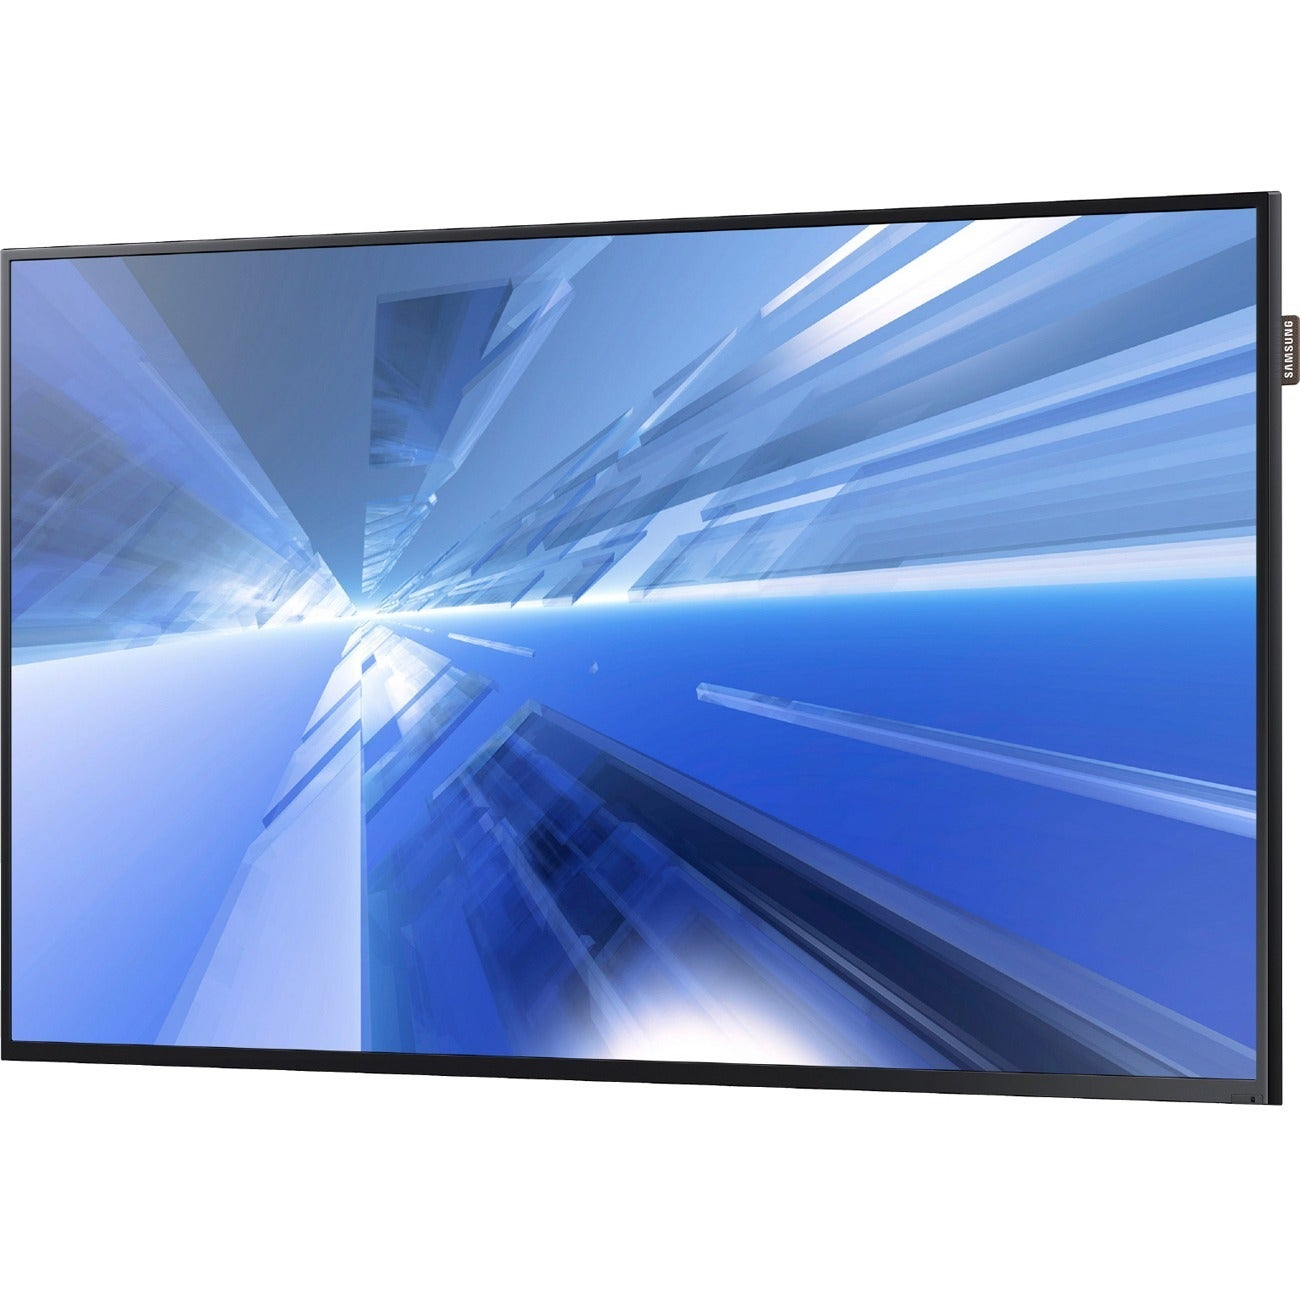 "Samsung DC32E - DC-E Series 32"" Direct-Lit LED Display fo..."